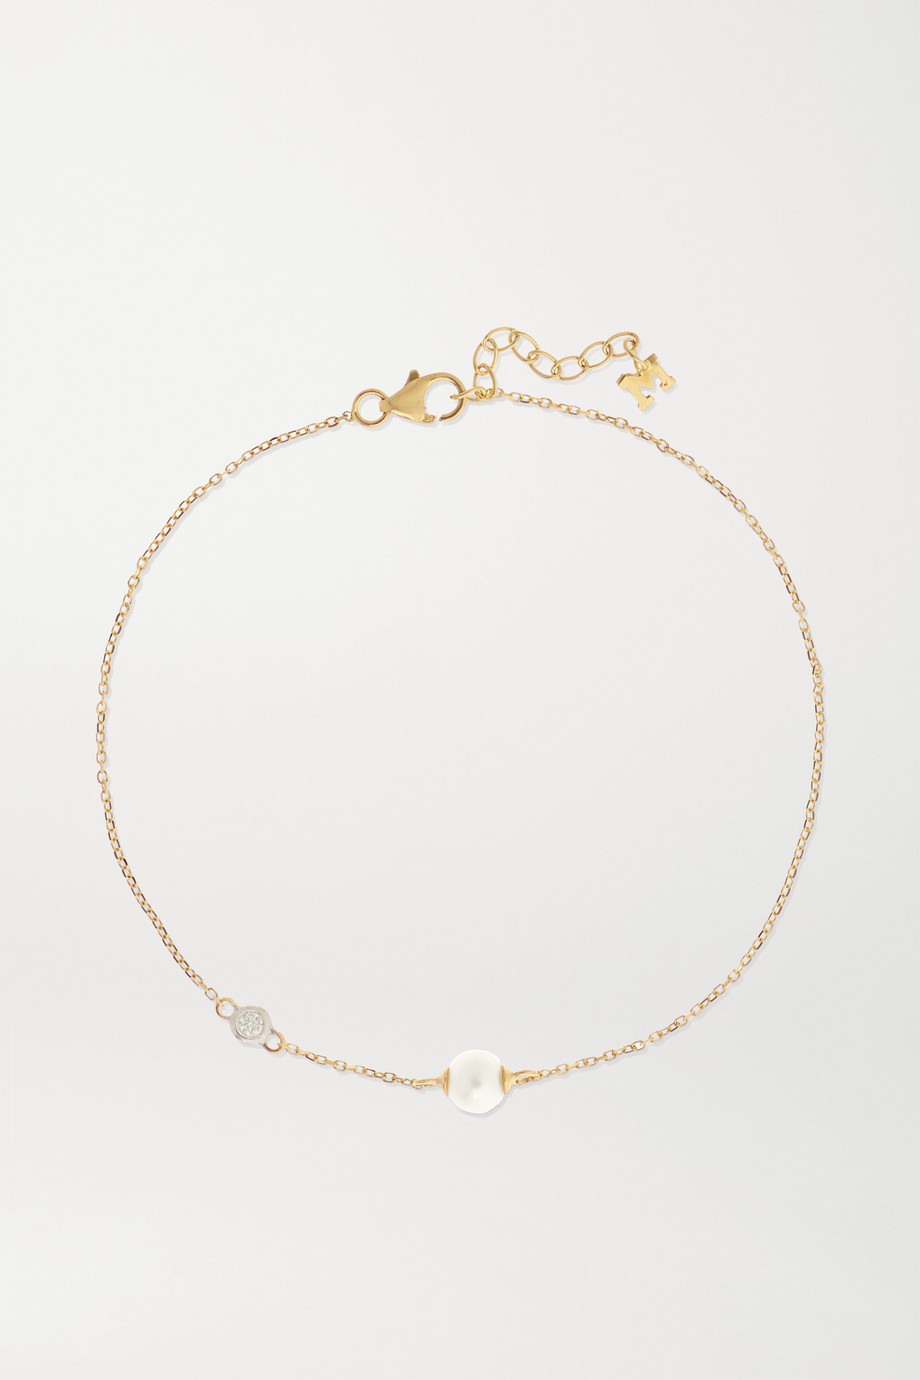 Mateo 14-karat gold, pearl and diamond bracelet